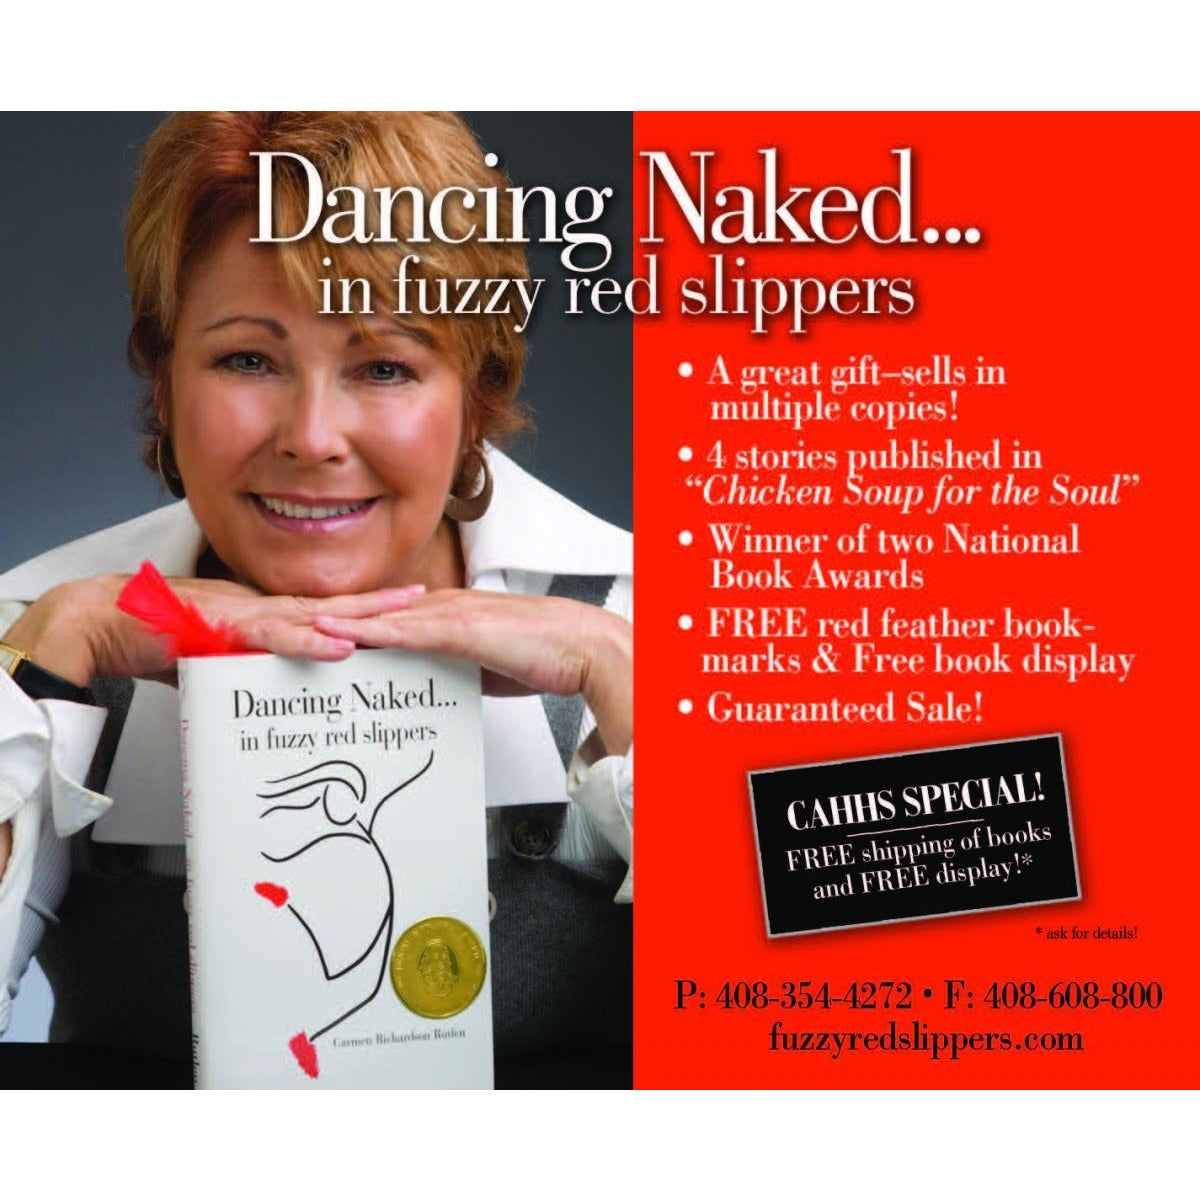 Dancing Naked in Fuzzy Red Slippers  By Carmen Richaredson Rutlen